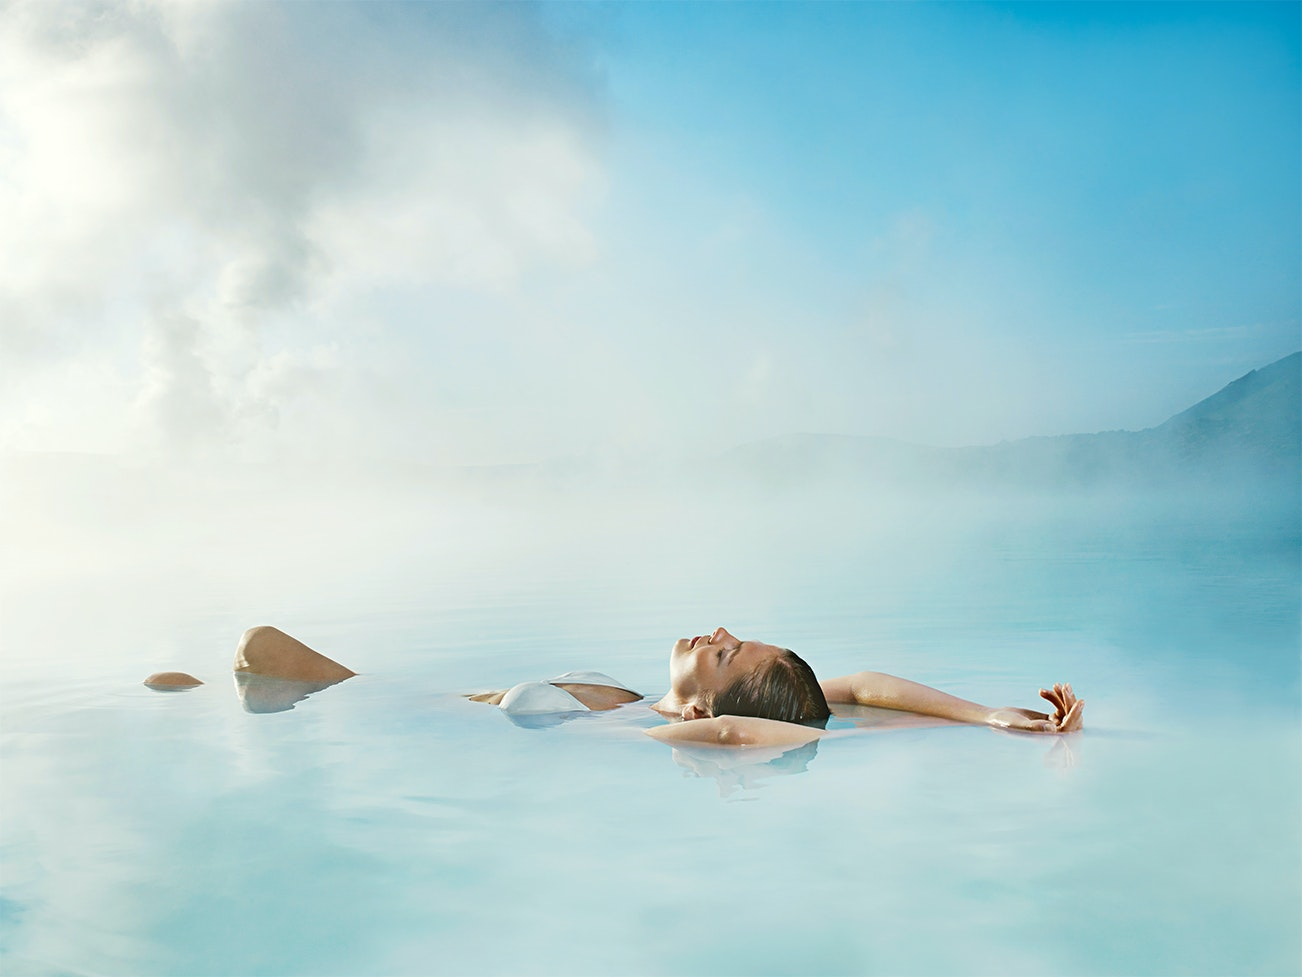 The Blue lagoon in Iceland is relaxing